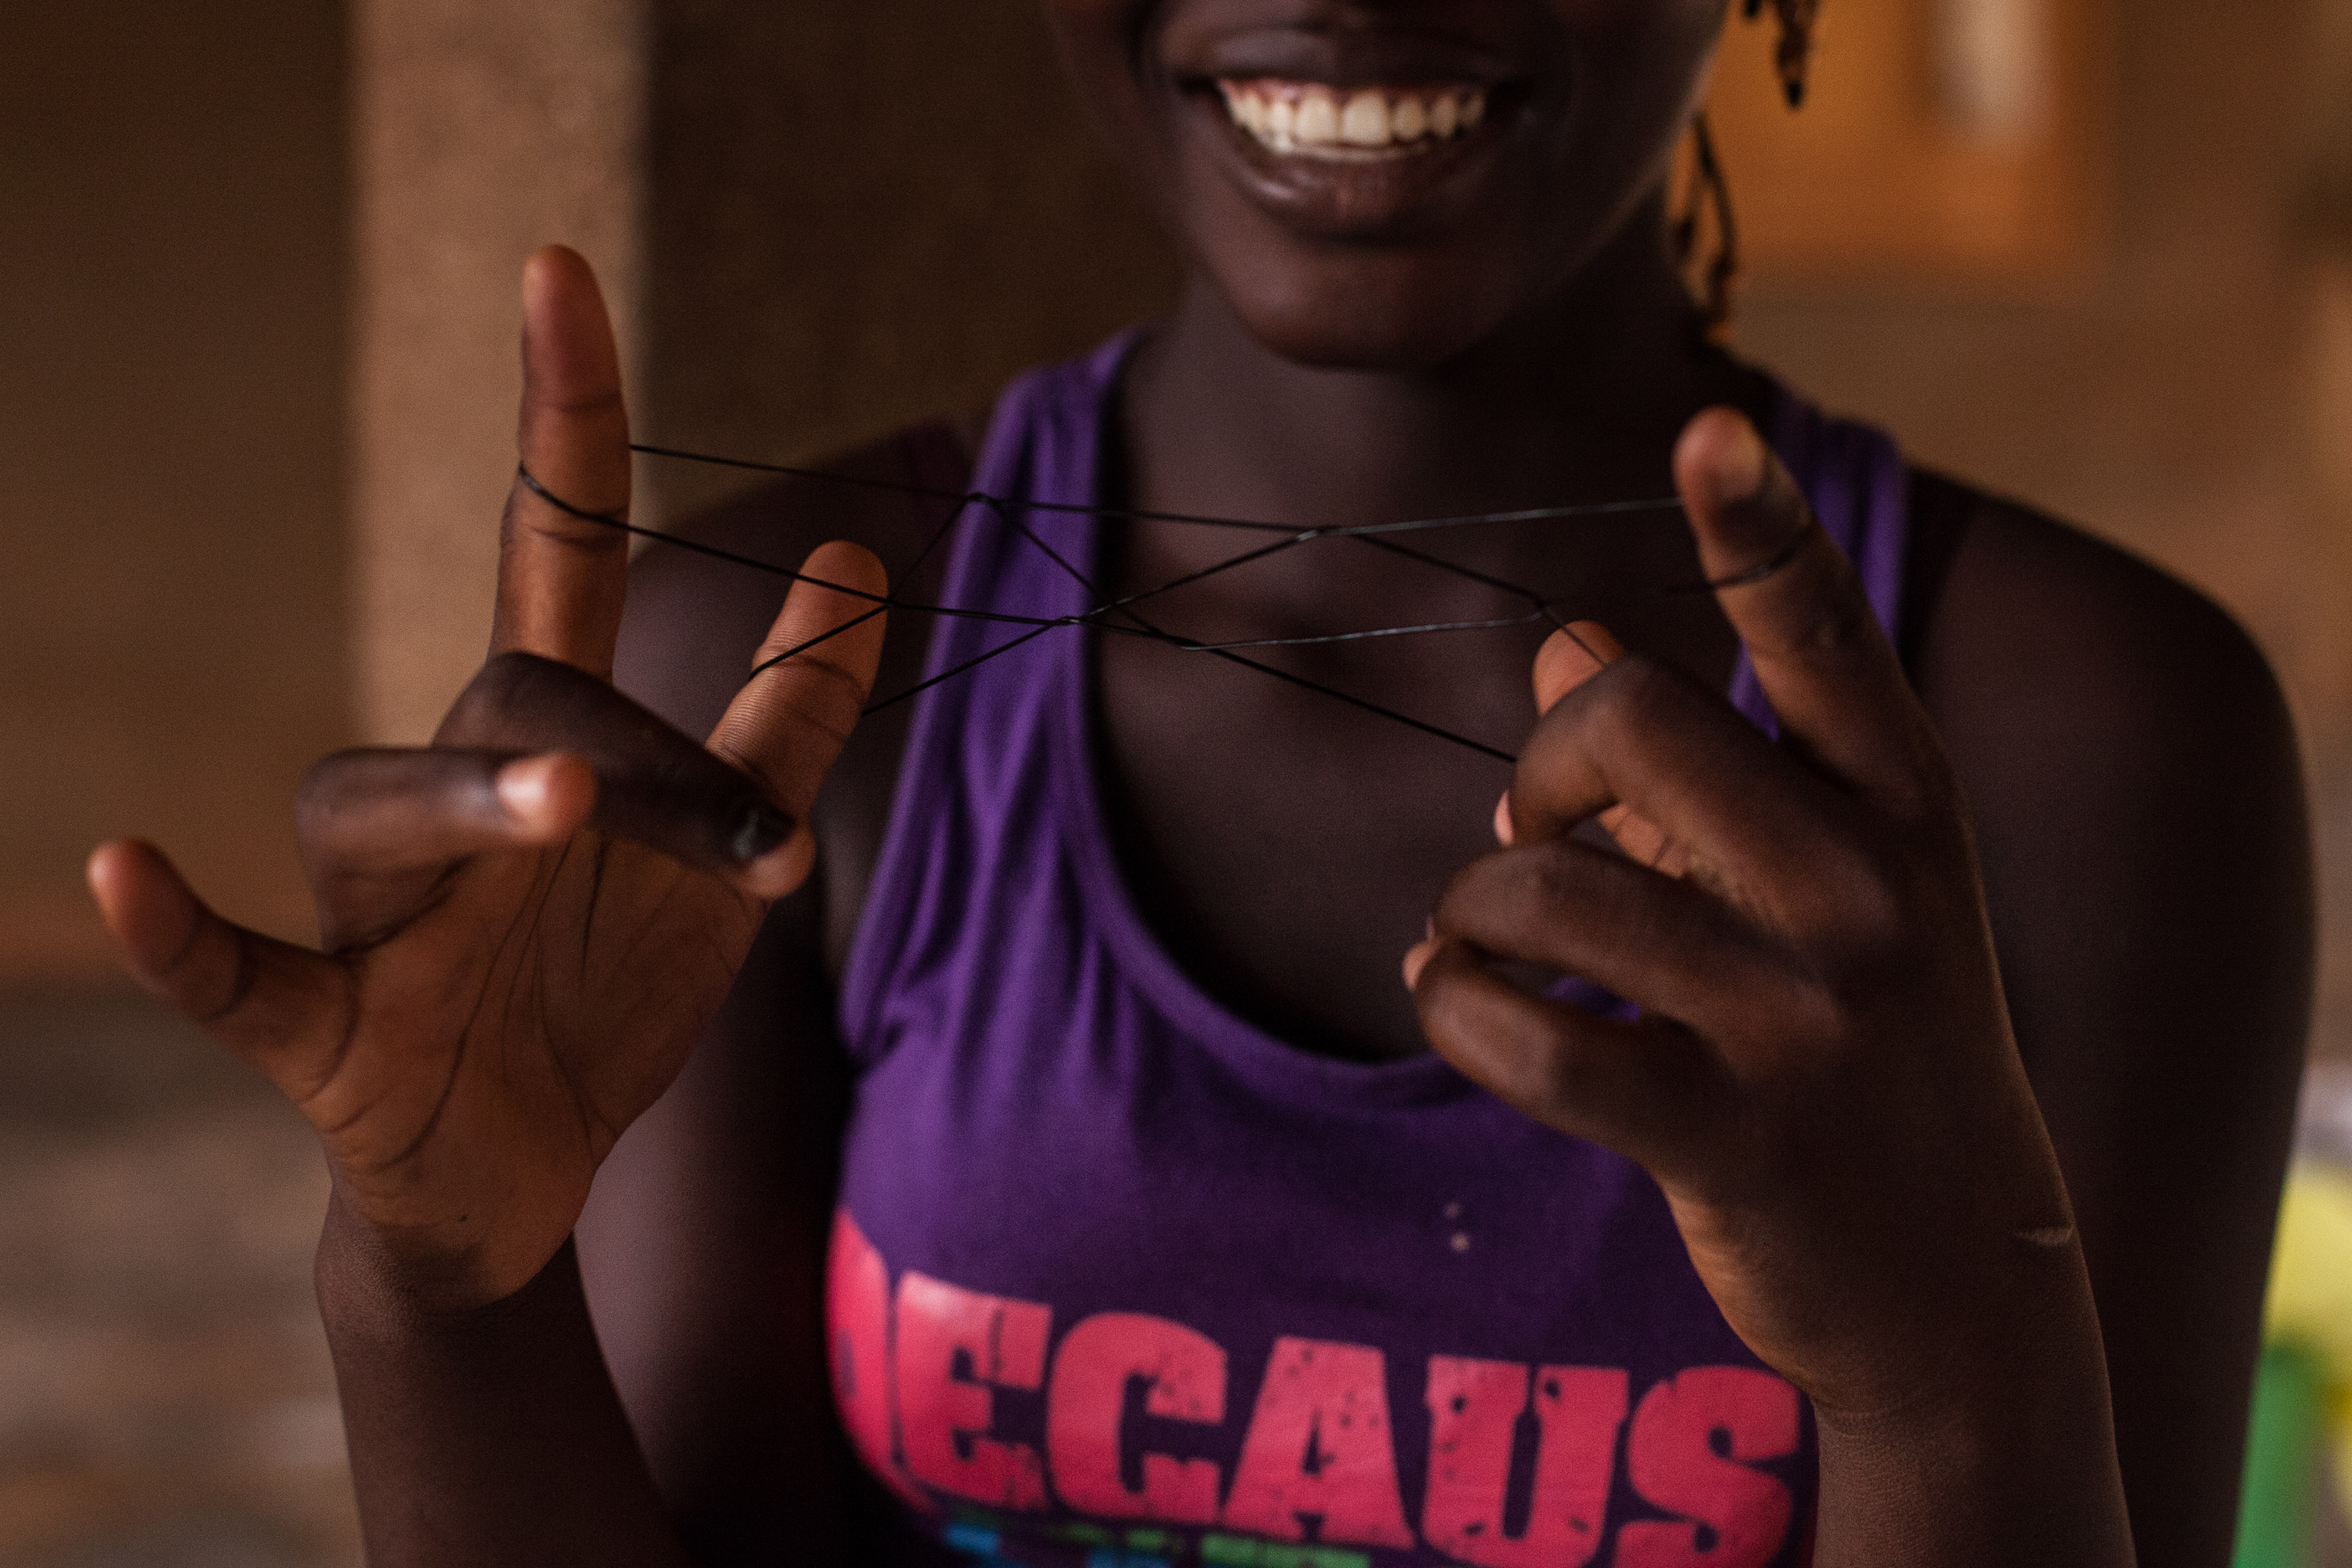 Playing with elastic bands – a typical game played by girls aged 7 to 12 in Burkina Faso. Girls relax and reconnect with their childhoods at Foceb shelter for survivors of rape, early and forced marriage and unwanted pregnancy in central Ouagadougou, capital of Burkina Faso. The shelter takes in girls aged as young as 12 to as old as 18. Between 2001 and 2009, the shelter accommodated a total of 209 girls and 168 children. In Burkina Faso, girls who get pregnant outside marriage are often rejected by their families. Places like Foceb give them the opportunity to rebuild their lives. In Burkina Faso, 52% of all girls are forced into marriage – the 7th highest rate for child marriage in the world.